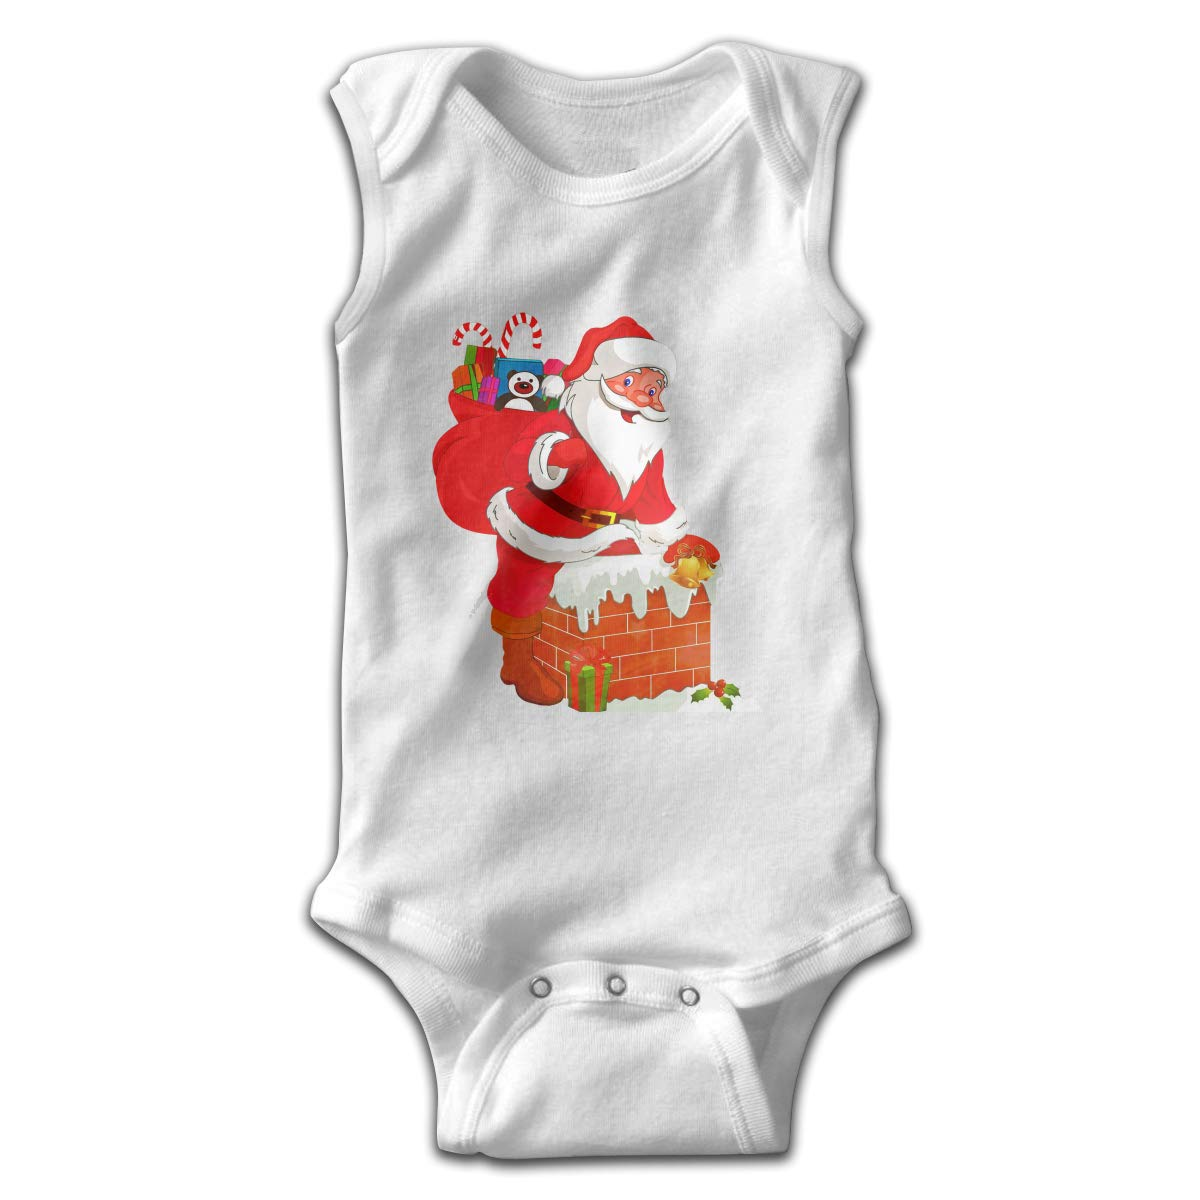 Efbj Toddler Baby Boys Rompers Sleeveless Cotton Onesie,Santa Claus Climb Into The Chimney Bodysuit Summer Pajamas